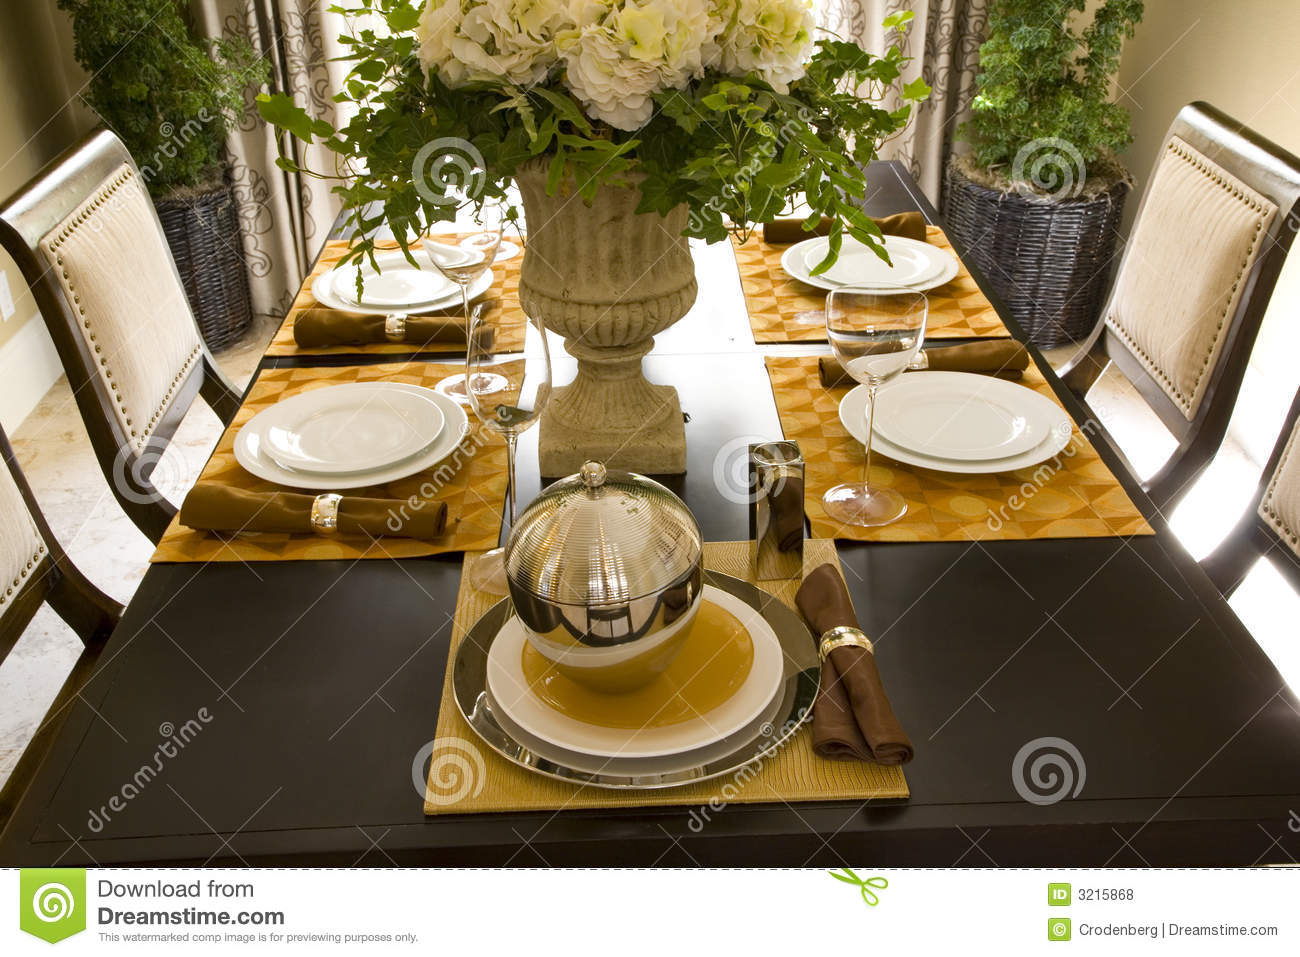 Dining table decor 1707 stock photo image of suburb for Dining table set decoration